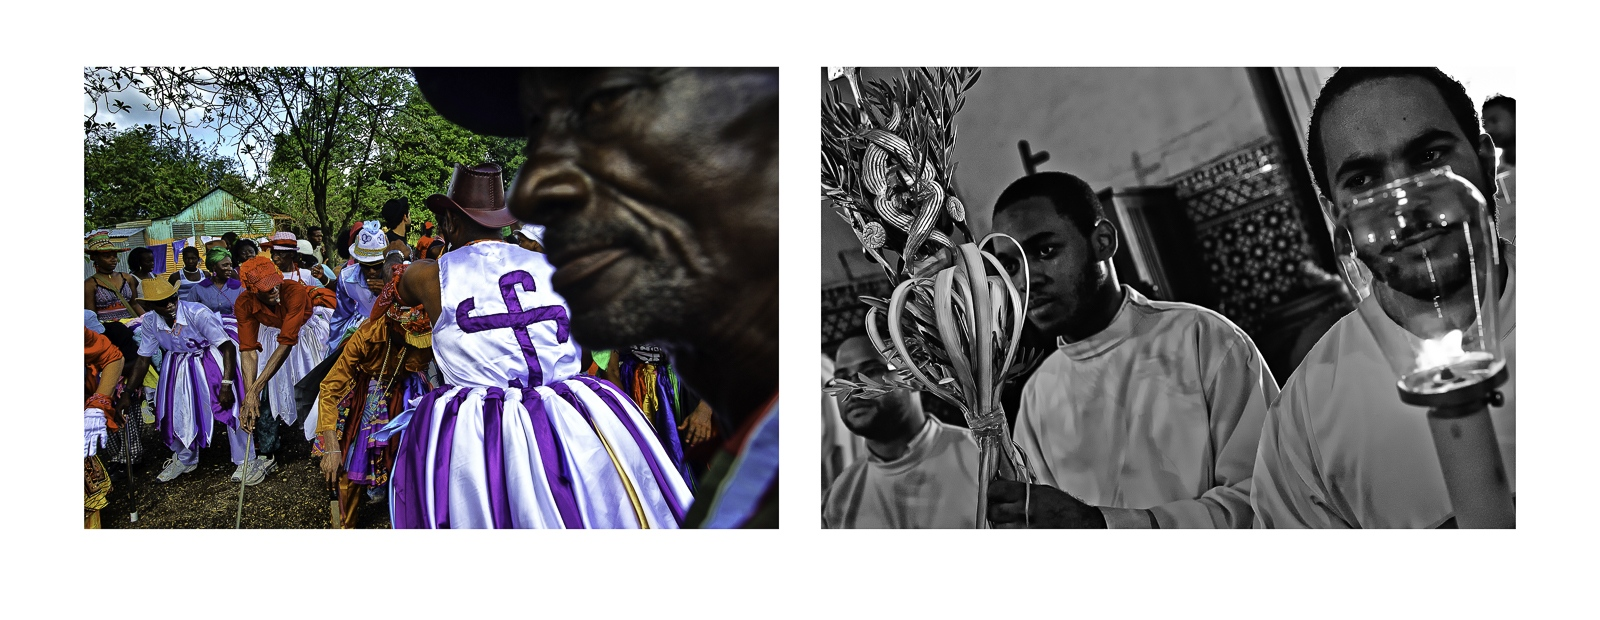 Art and Documentary Photography - Loading 2_Procesion._2011____PFN.jpg